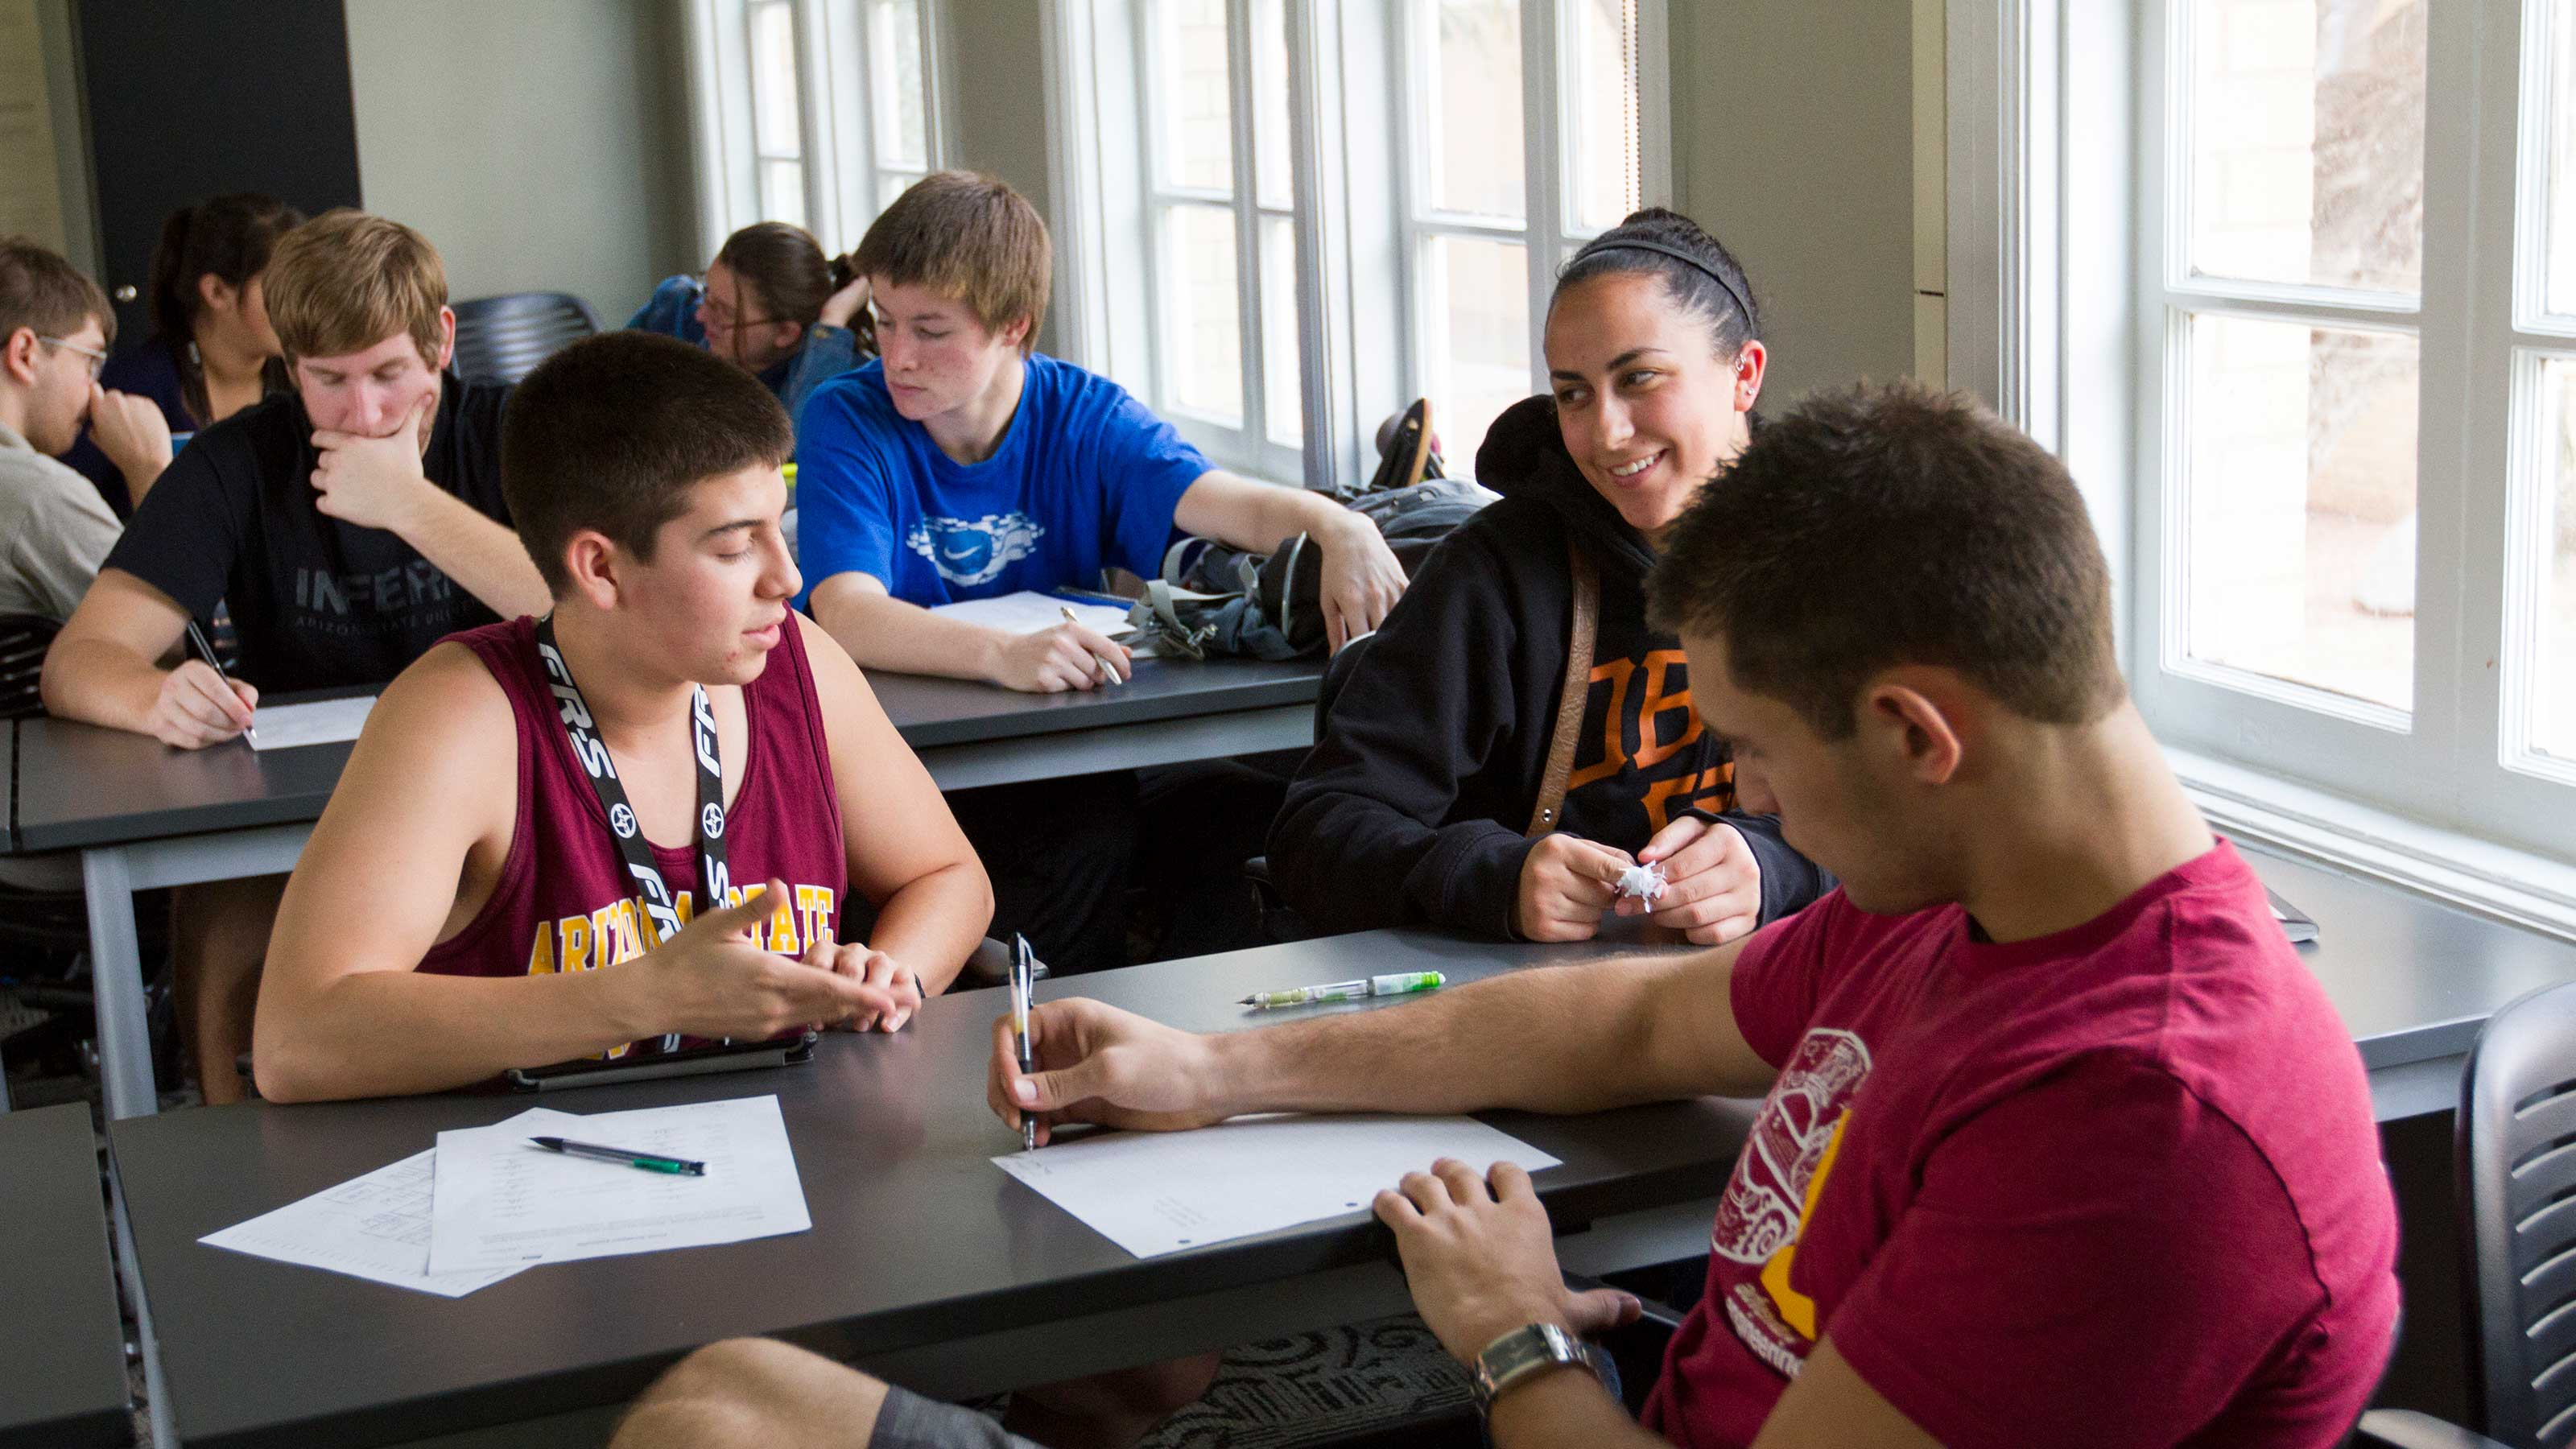 A couple of students work at a table together with an undergraduate teaching assistant